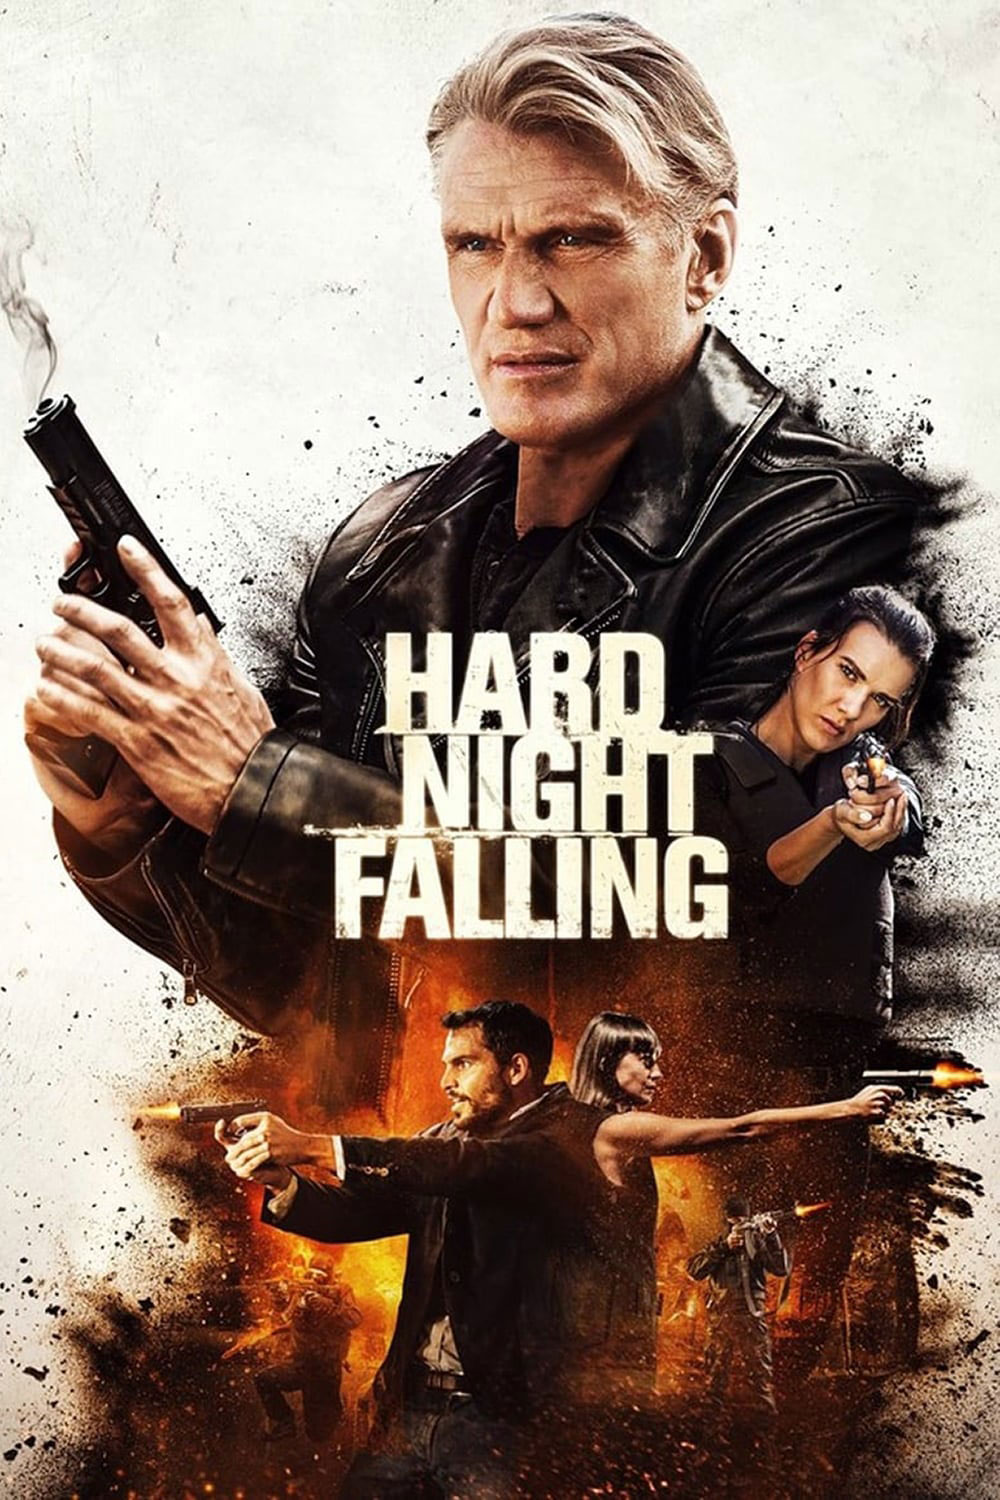 Hard Night Falling movie poster